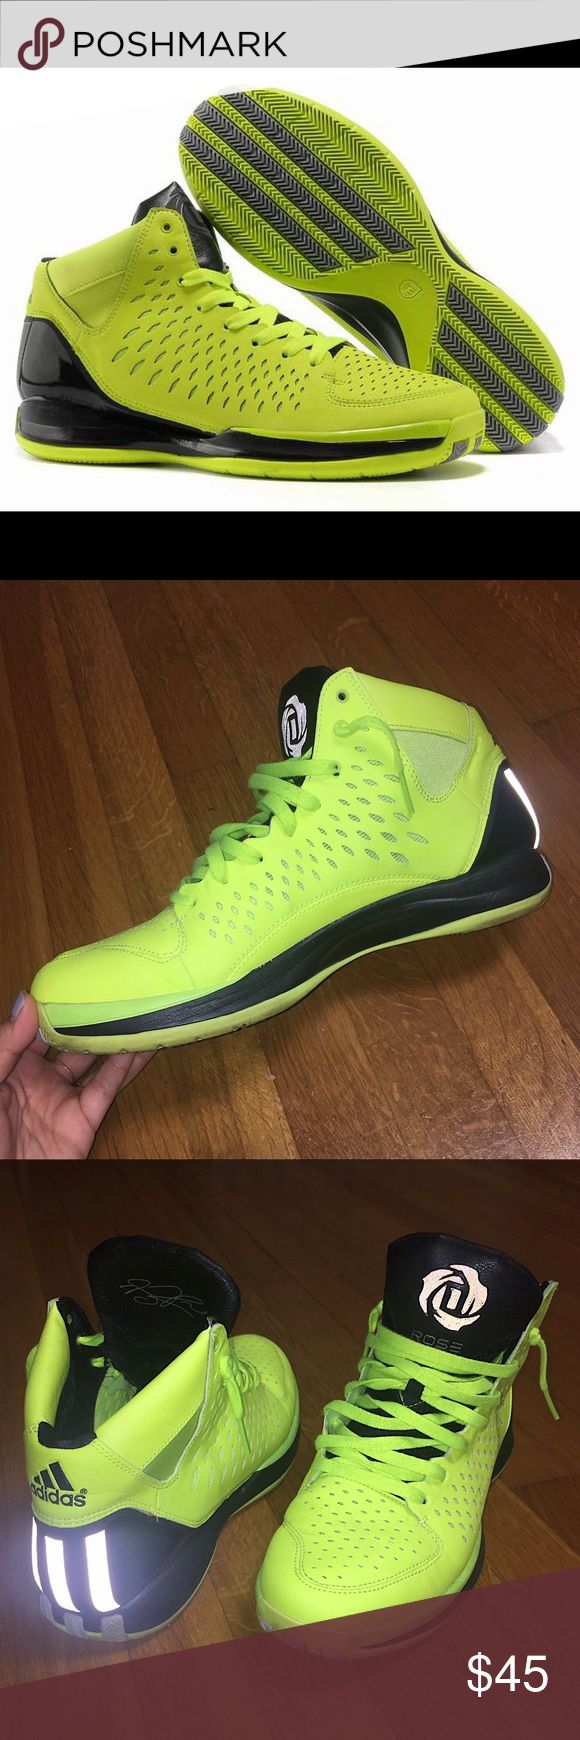 Men's Adidas Adizero Derrick Rose 3.0 Adidas Adizero Derrick Rose 3.0 basketball sneakers in neon yellow and black. Worn once, in great condition. Designed with hyperfuse construction for unmatched light-weight flexibility and breathability. Adidas Shoes Sneakers